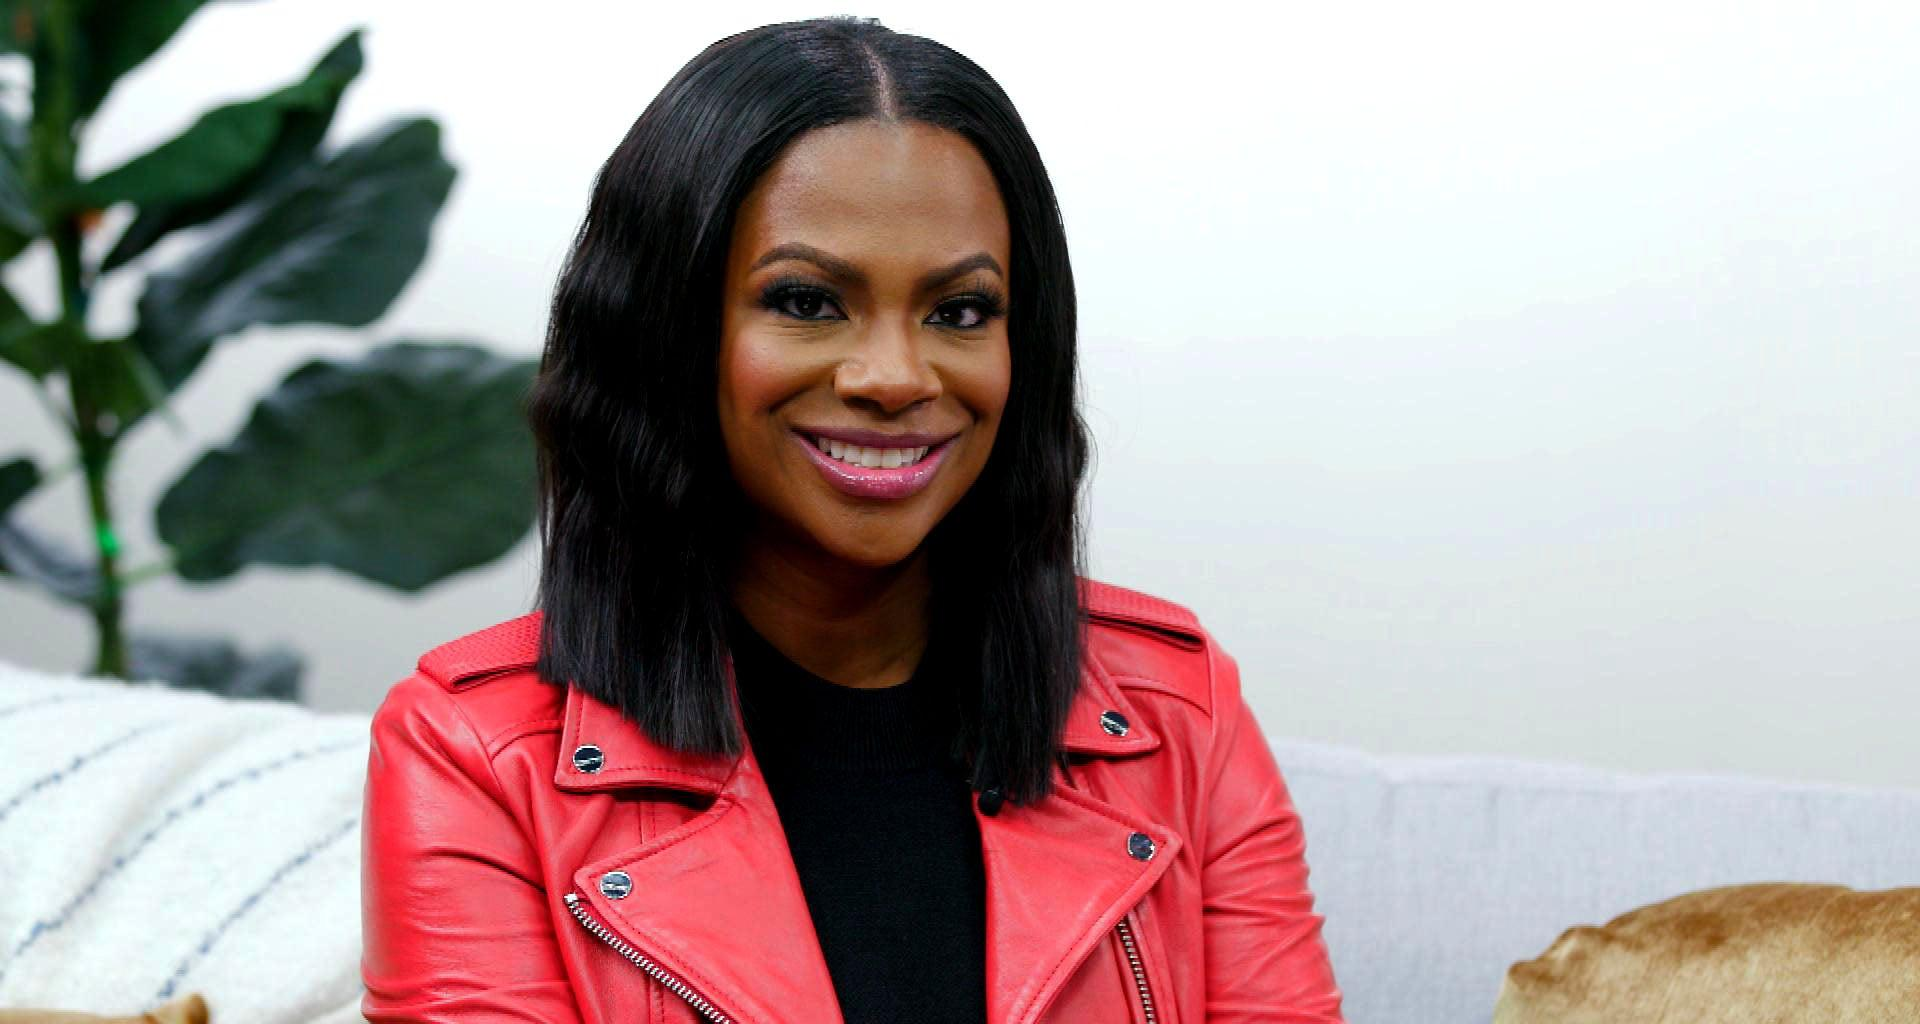 Kandi Burruss Poses With Cynthia Bailey And Makes Fans' Day